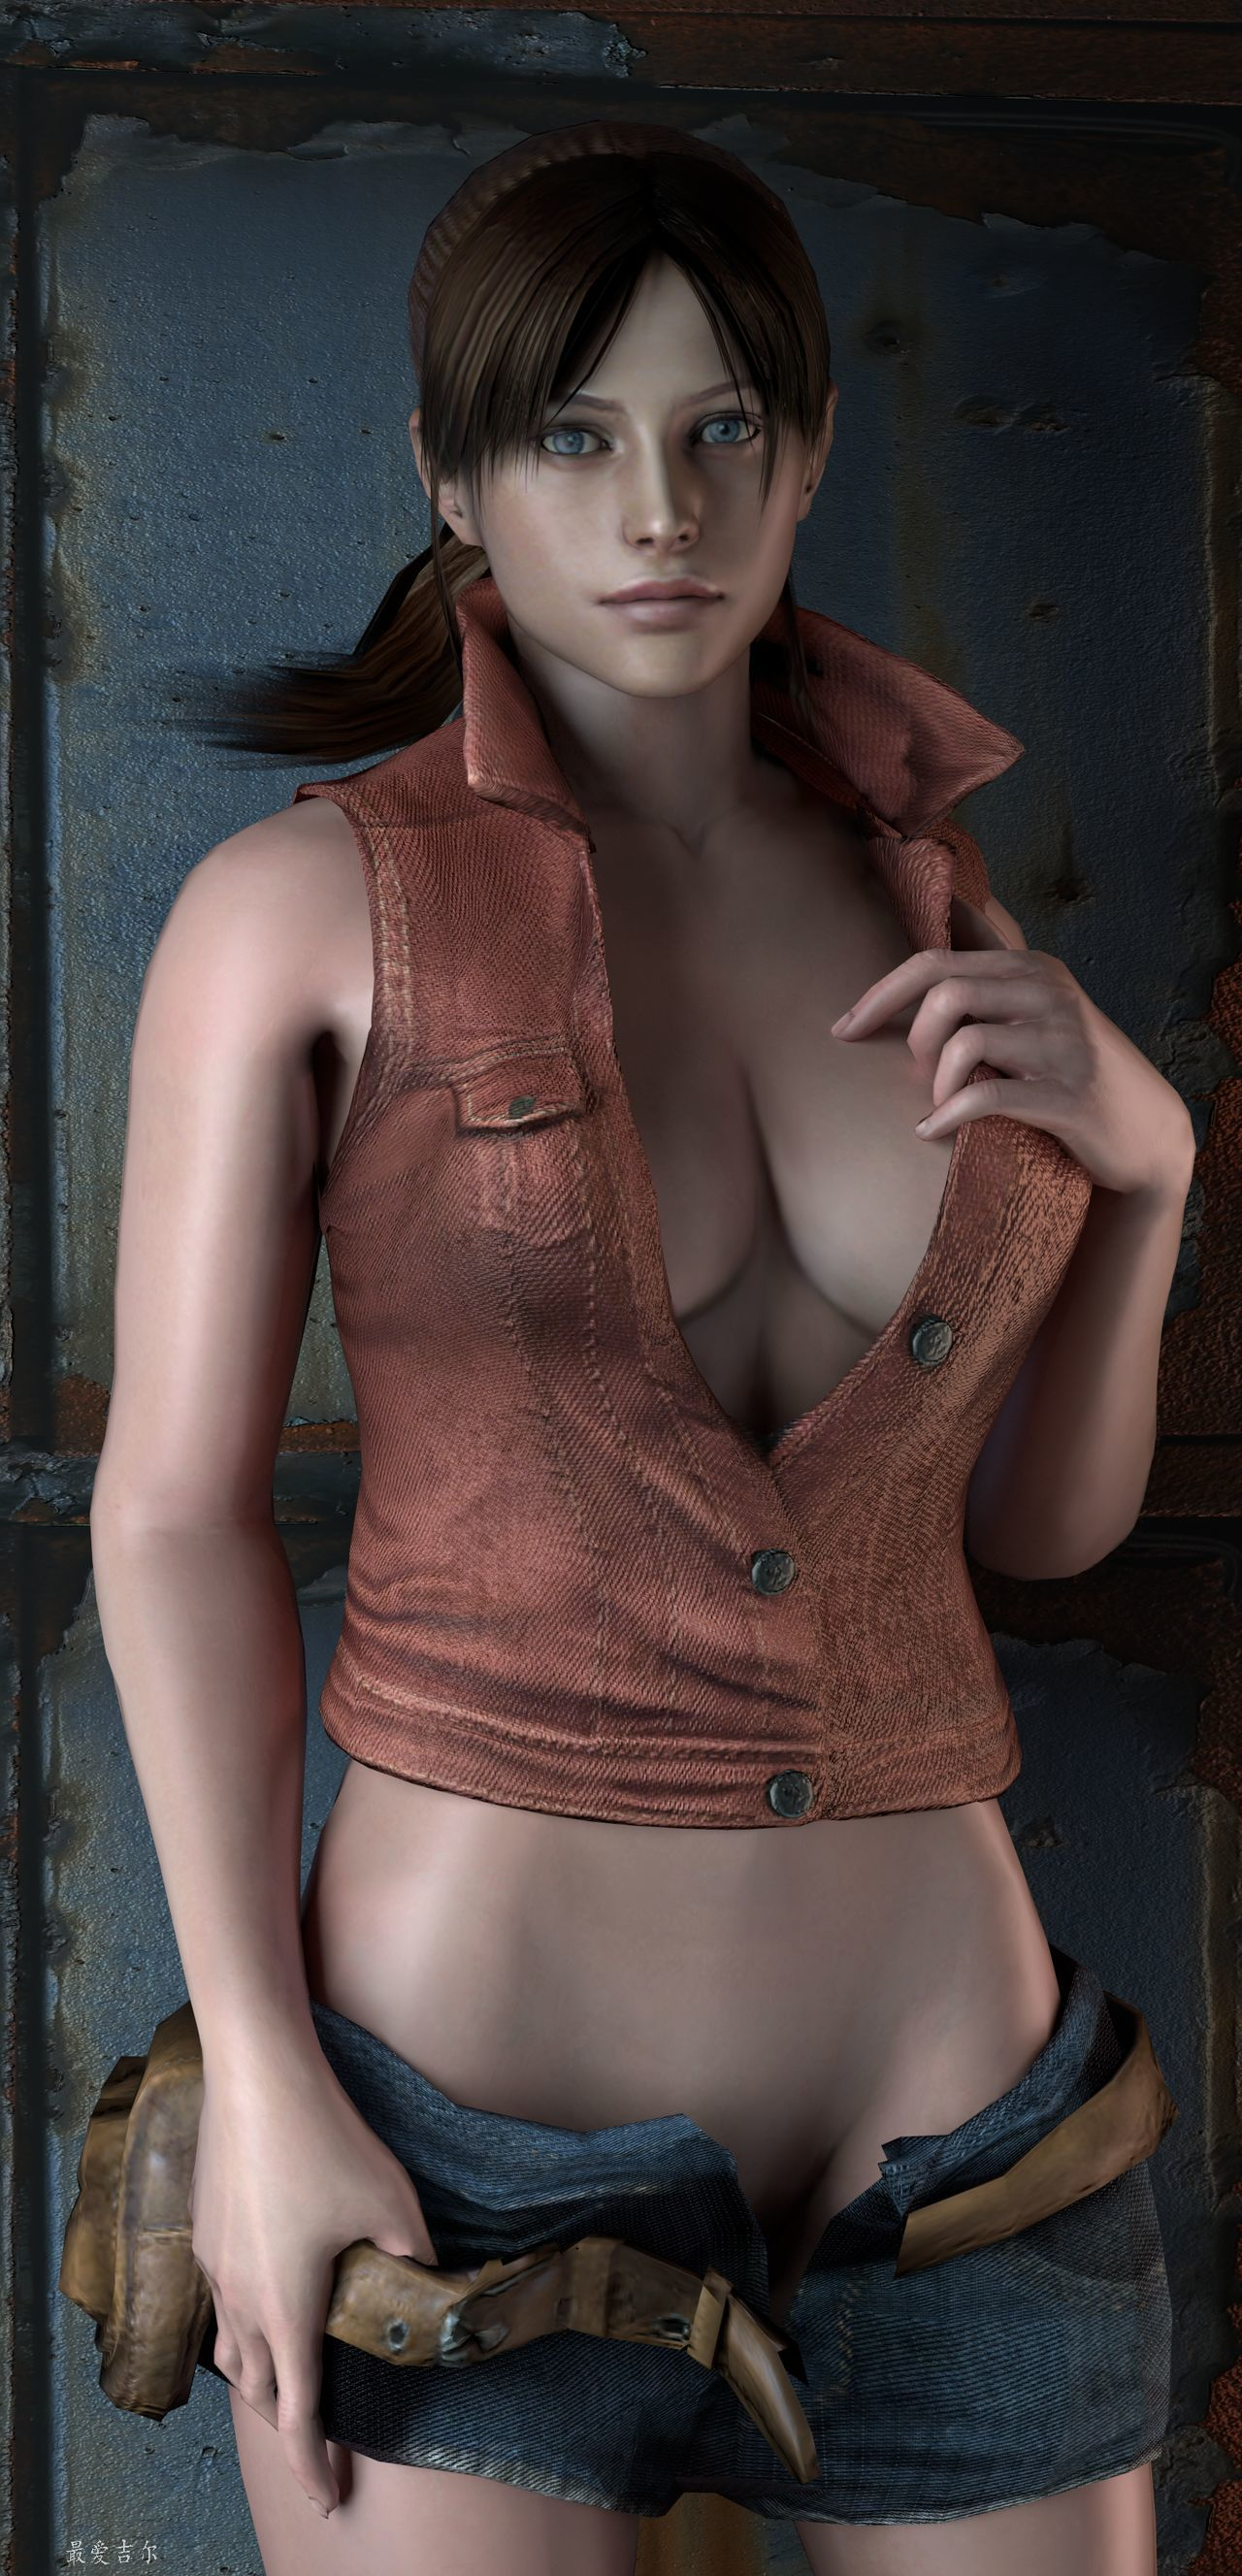 Claire redfield photos